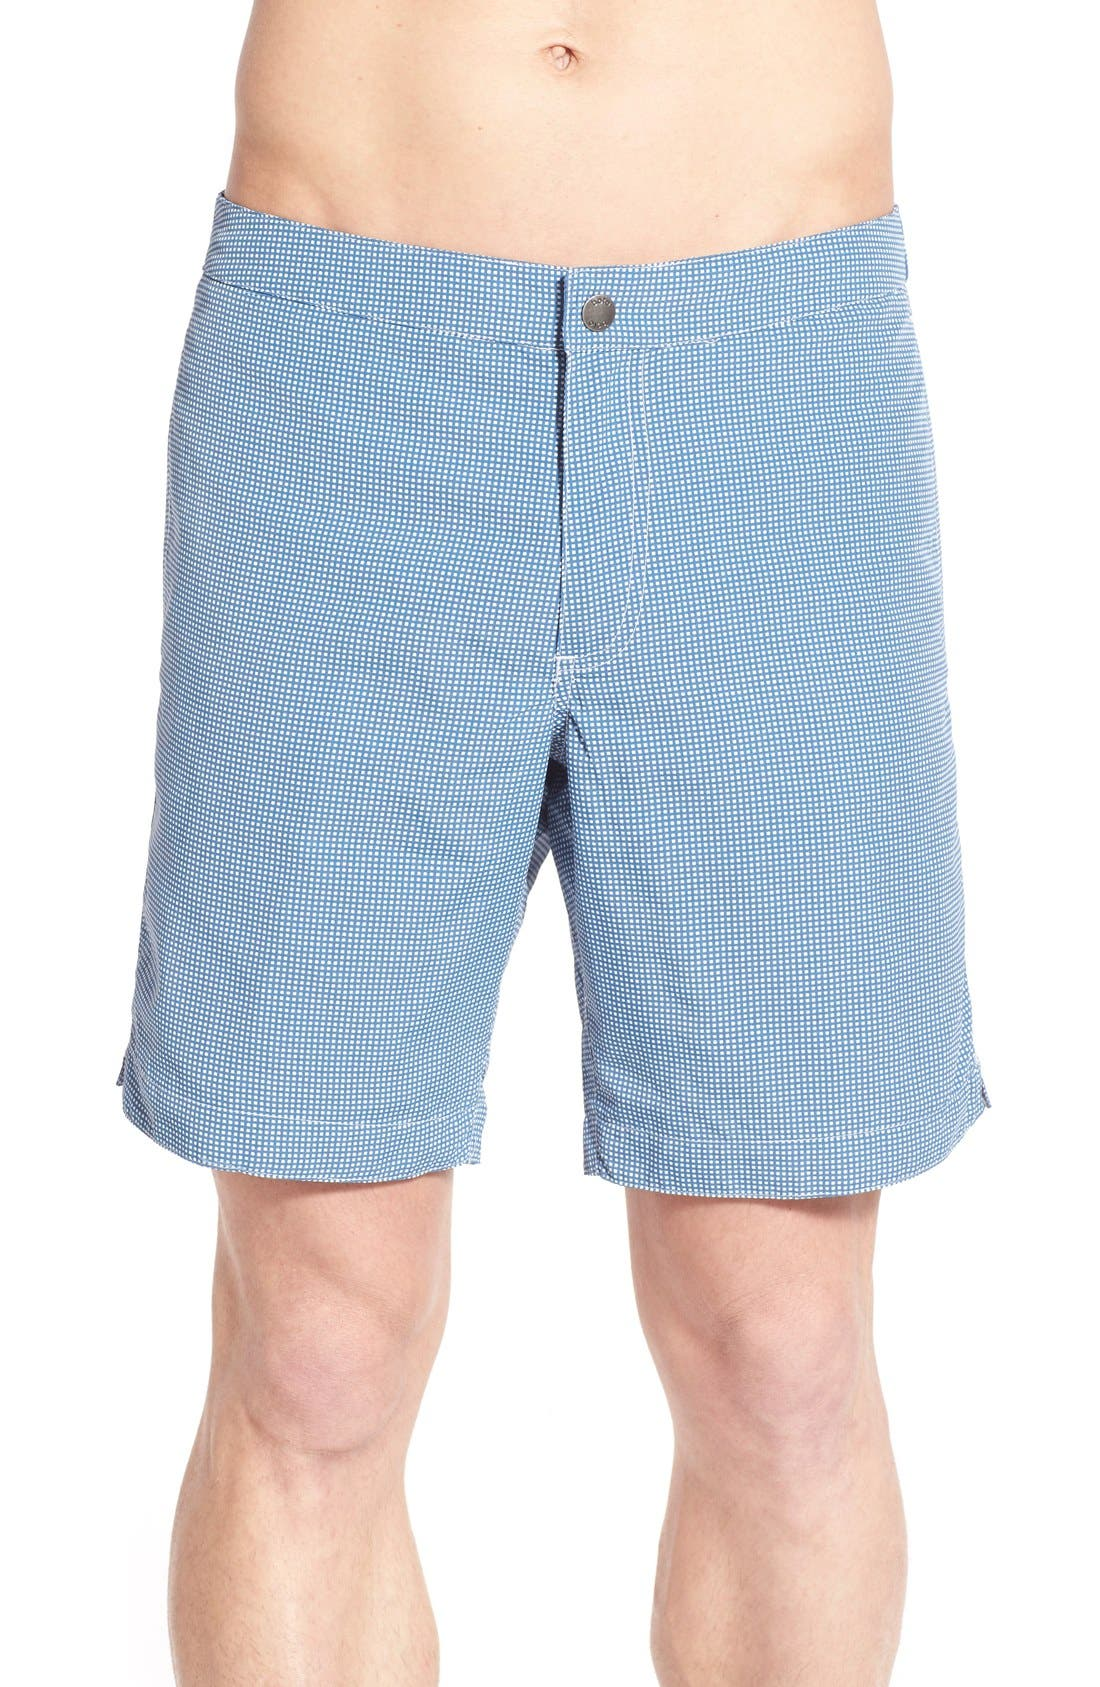 Aruba Tailored Fit Microcheck 8.5 Inch Swim Trunks,                             Main thumbnail 1, color,                             MICRO SQUARE ASH BLUE